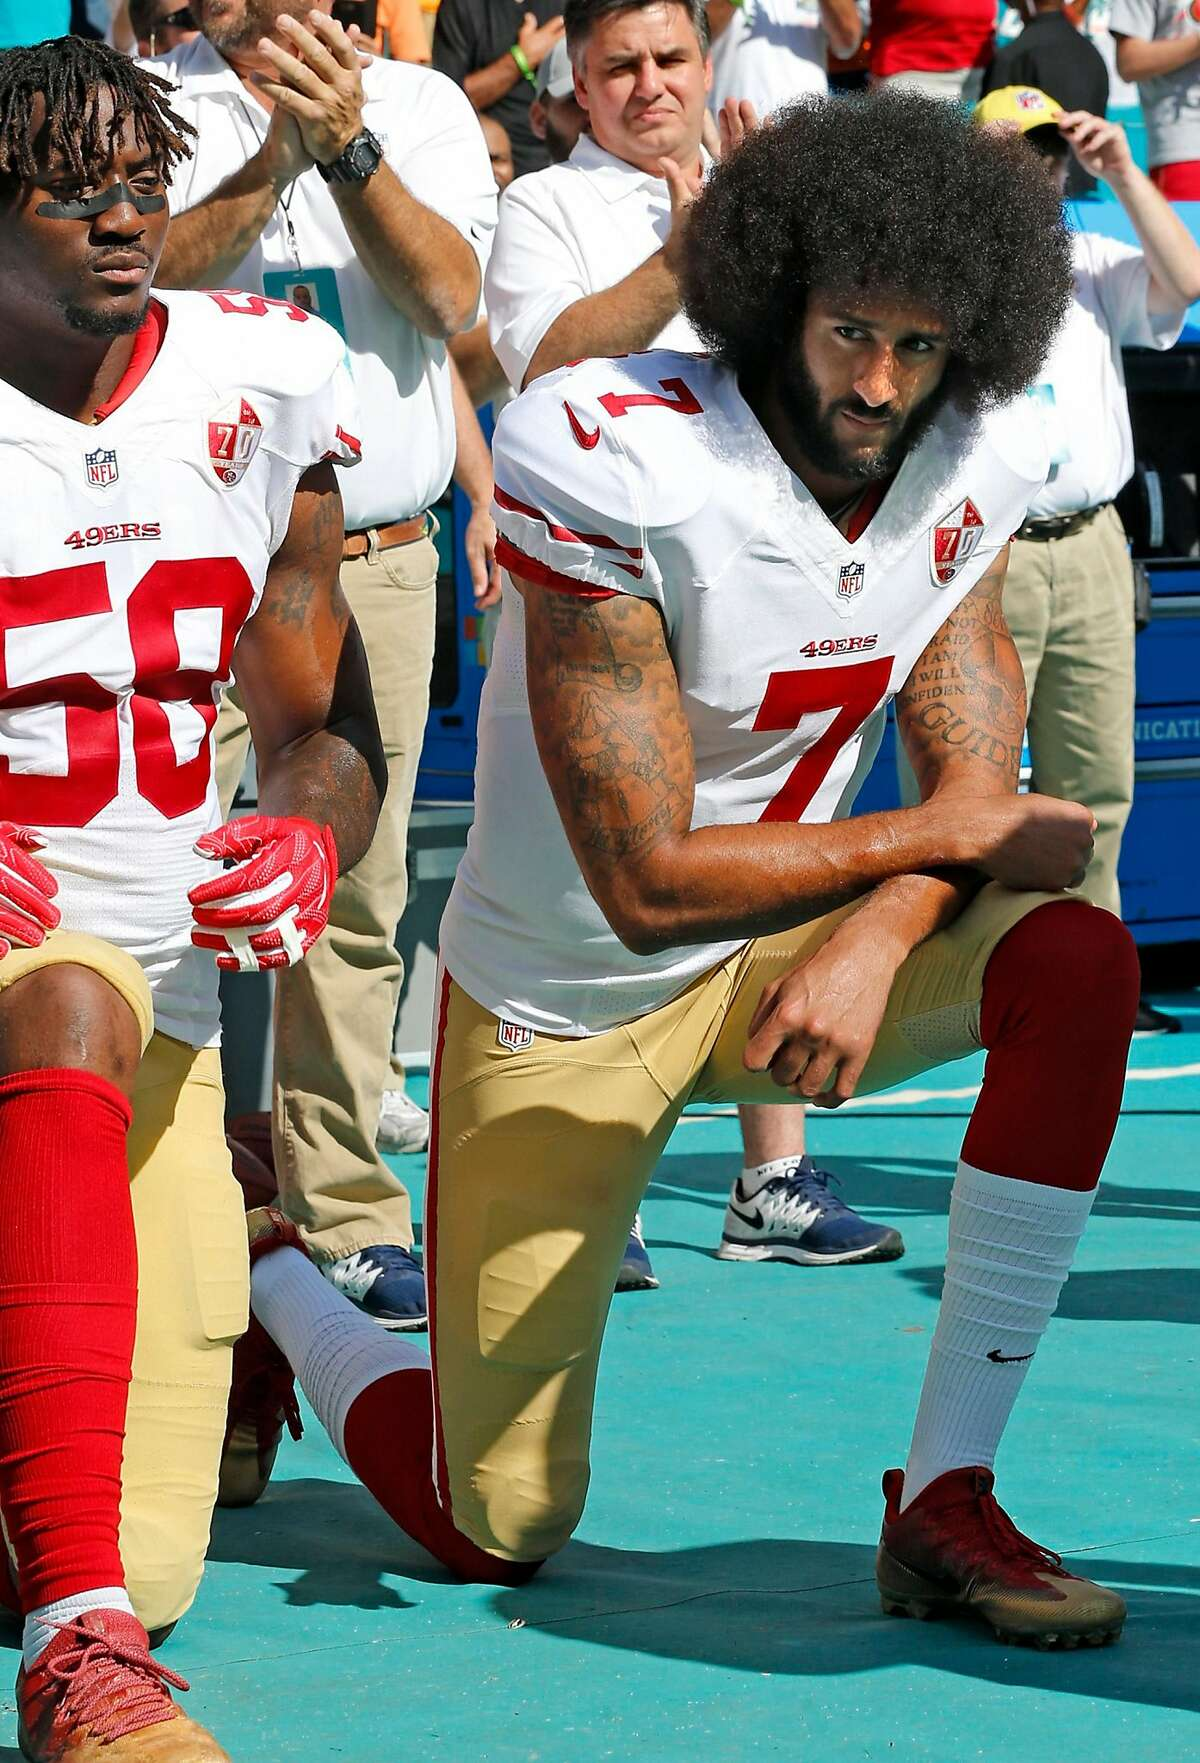 San Francisco 49ers outside linebacker Eli Harold (58) and quarterback Colin Kaepernick (7) take a knee during the national anthem before a game against the Miami Dolphins on Sunday, Nov. 27, 2016 at Hard Rock Stadium in Miami Gardens, Fla. (Al Diaz/Miami Herald/TNS)